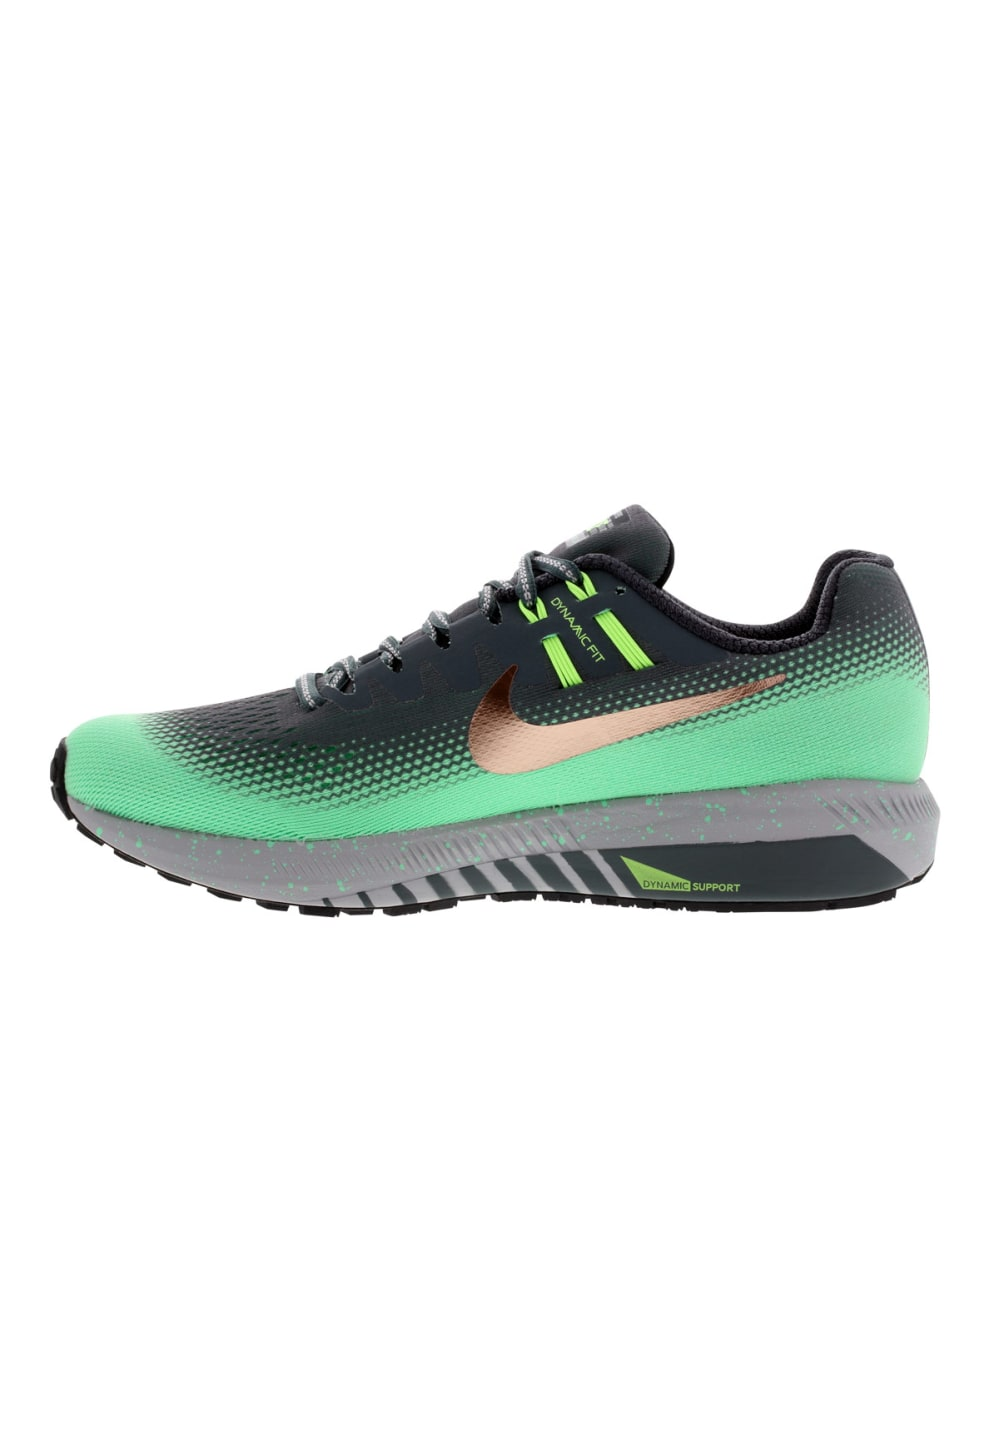 301deab5be3c0 Next. -60%. This product is currently out of stock. Nike. Air Zoom  Structure 20 Shield - Running shoes for Women